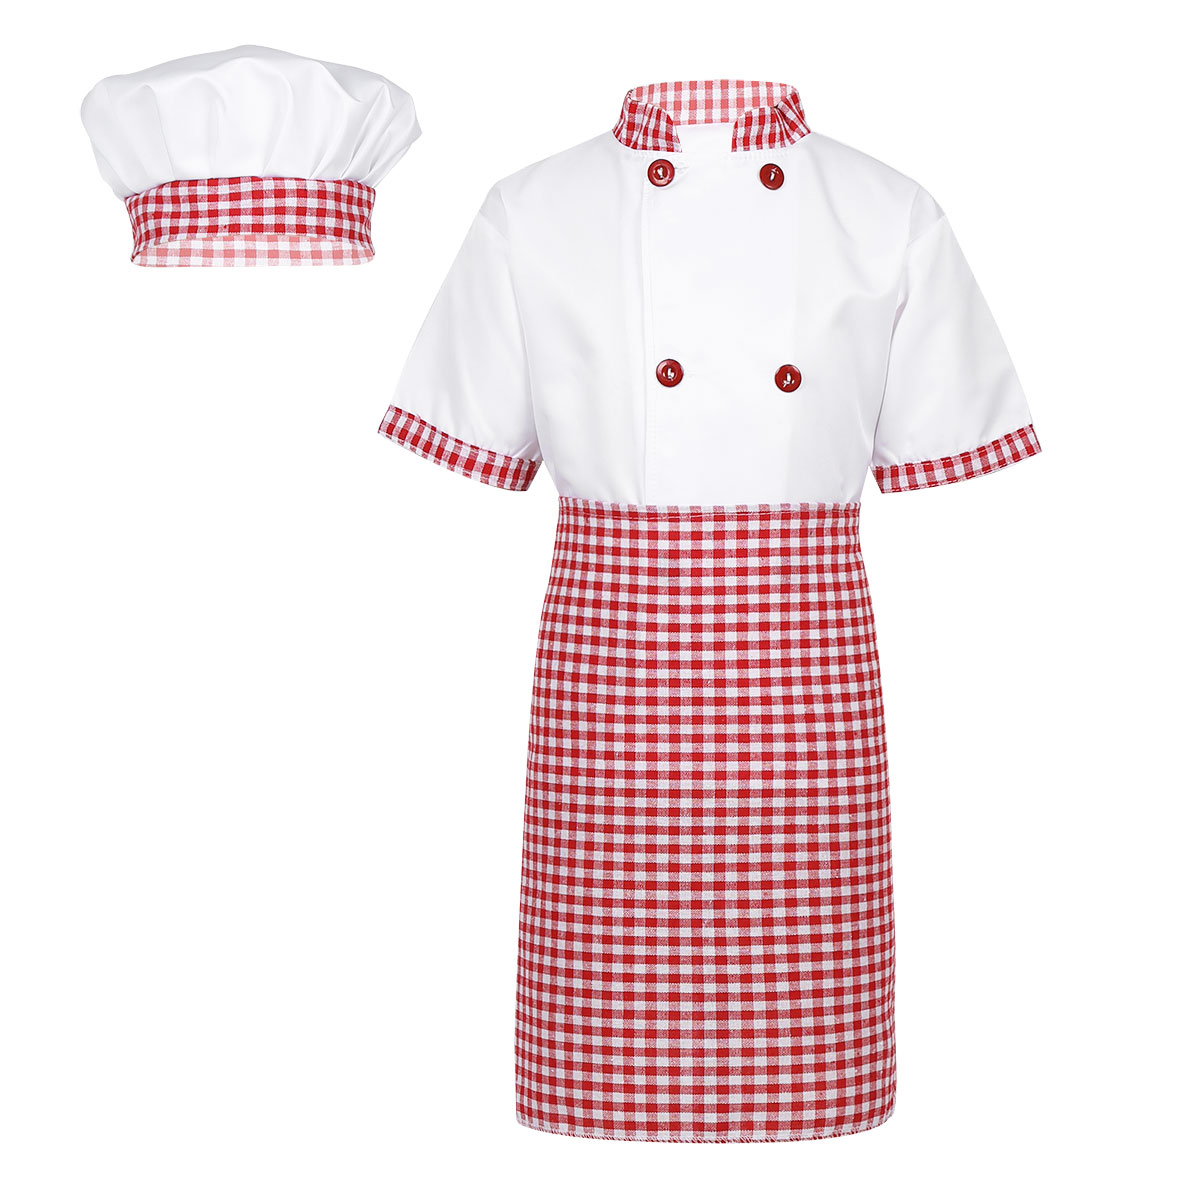 8a3f66e1a Chef Kids Costumes Cooking Clothing Baby Boy Girl s Chef Jacket with ...